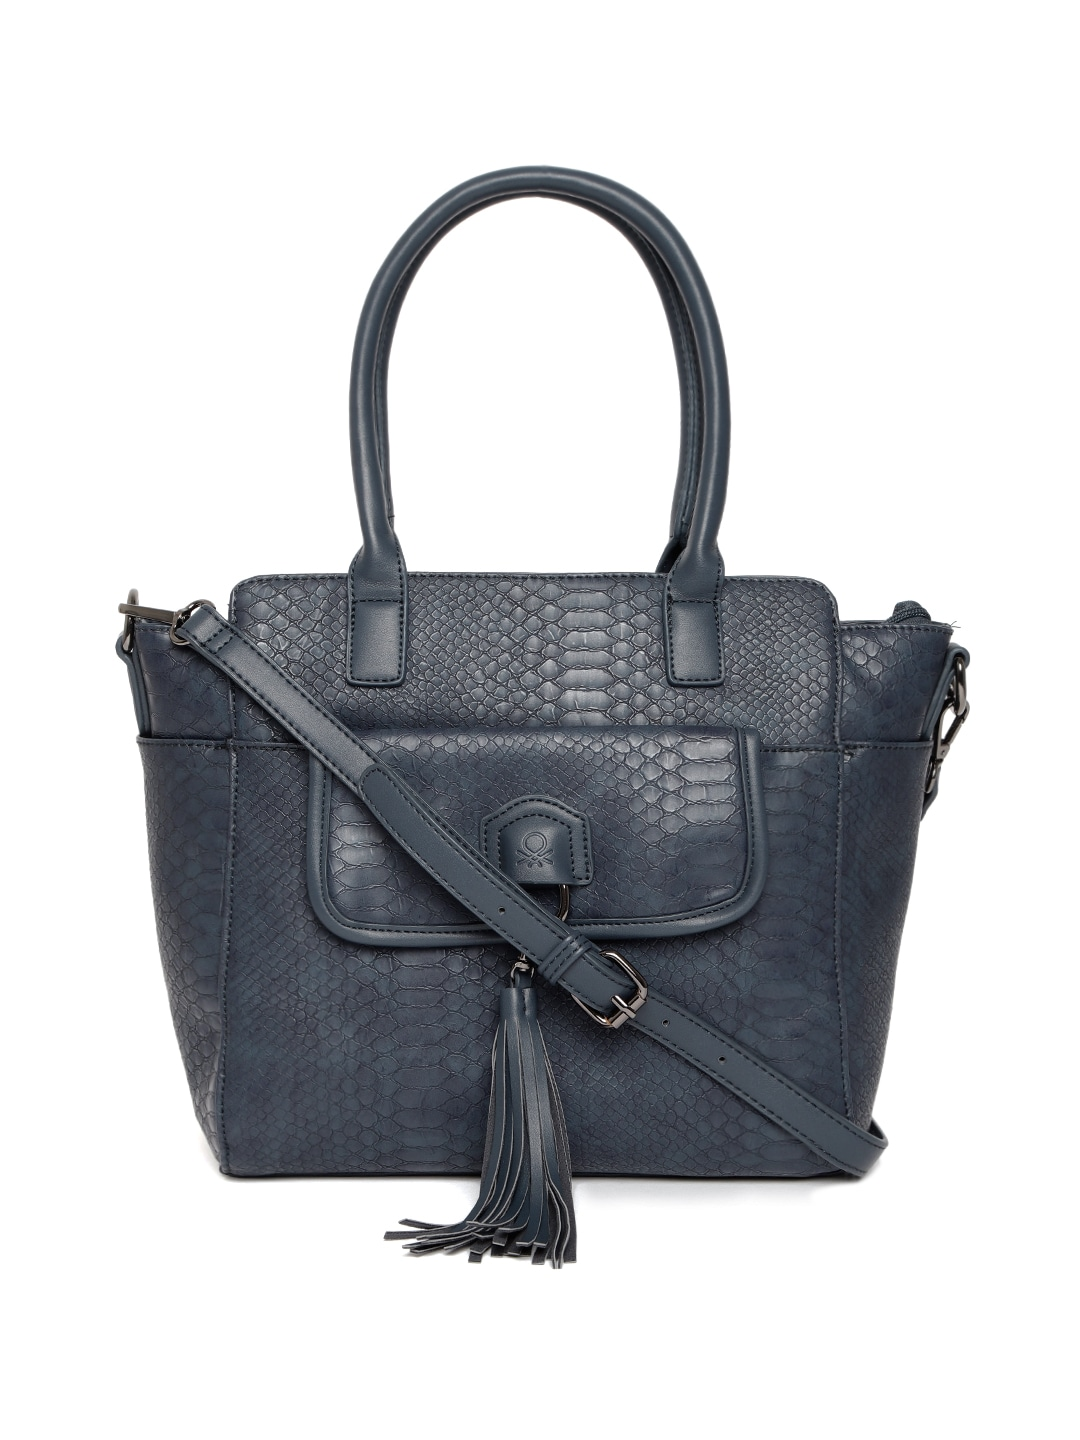 United Colors Of Benetton Handbags Online In India